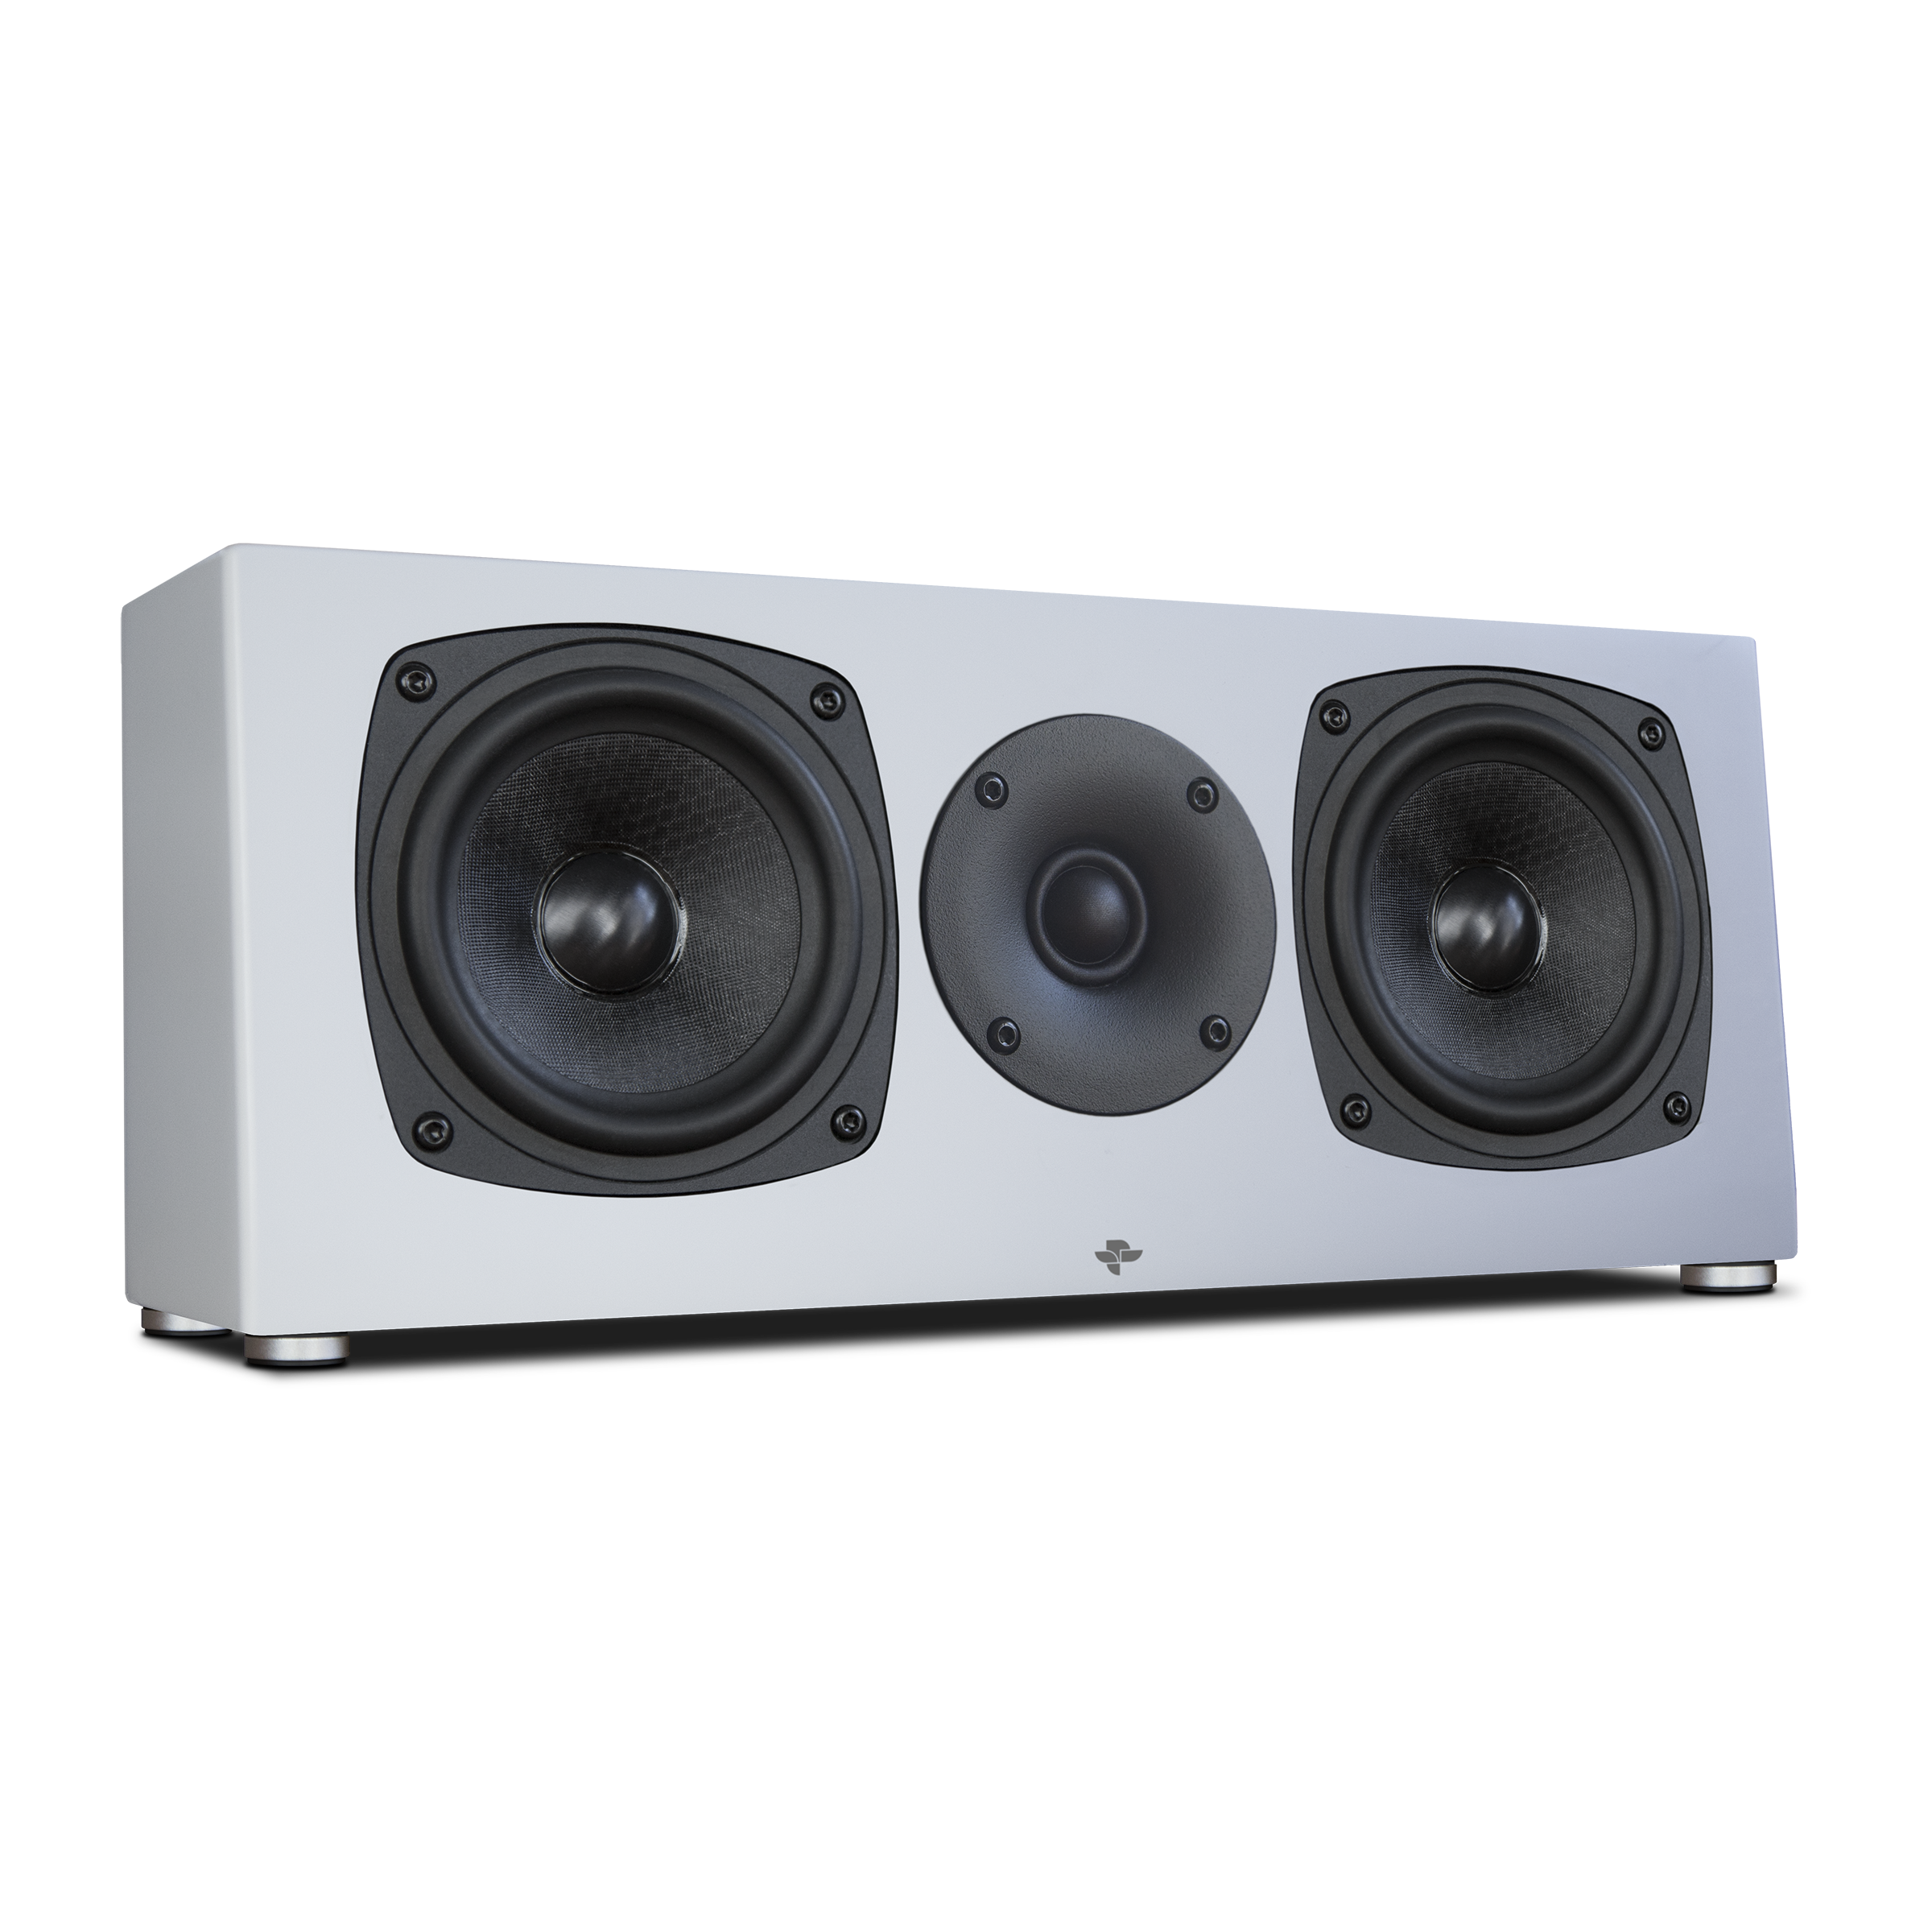 KIN surface mount speaker range - Click here for more details